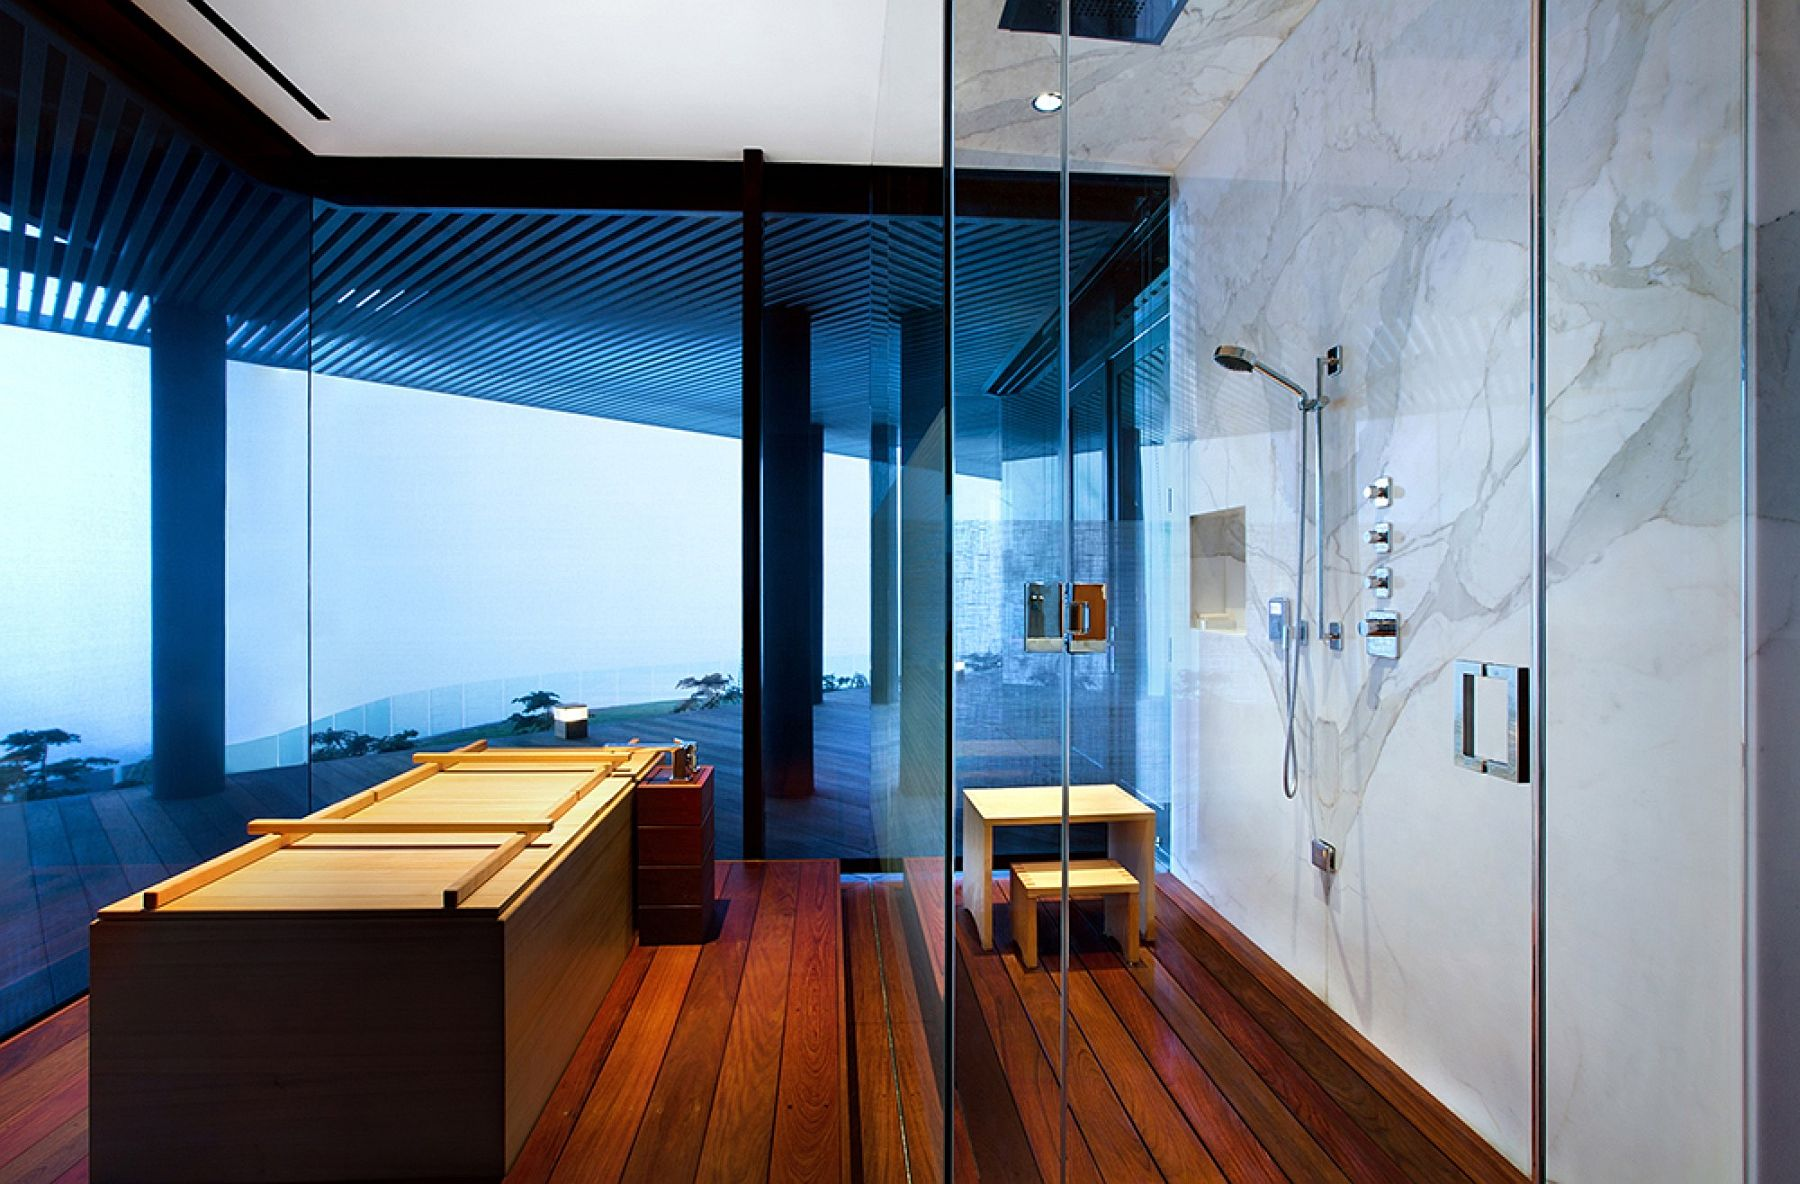 Exquisite contemporary bathroom with marble and glass shower area